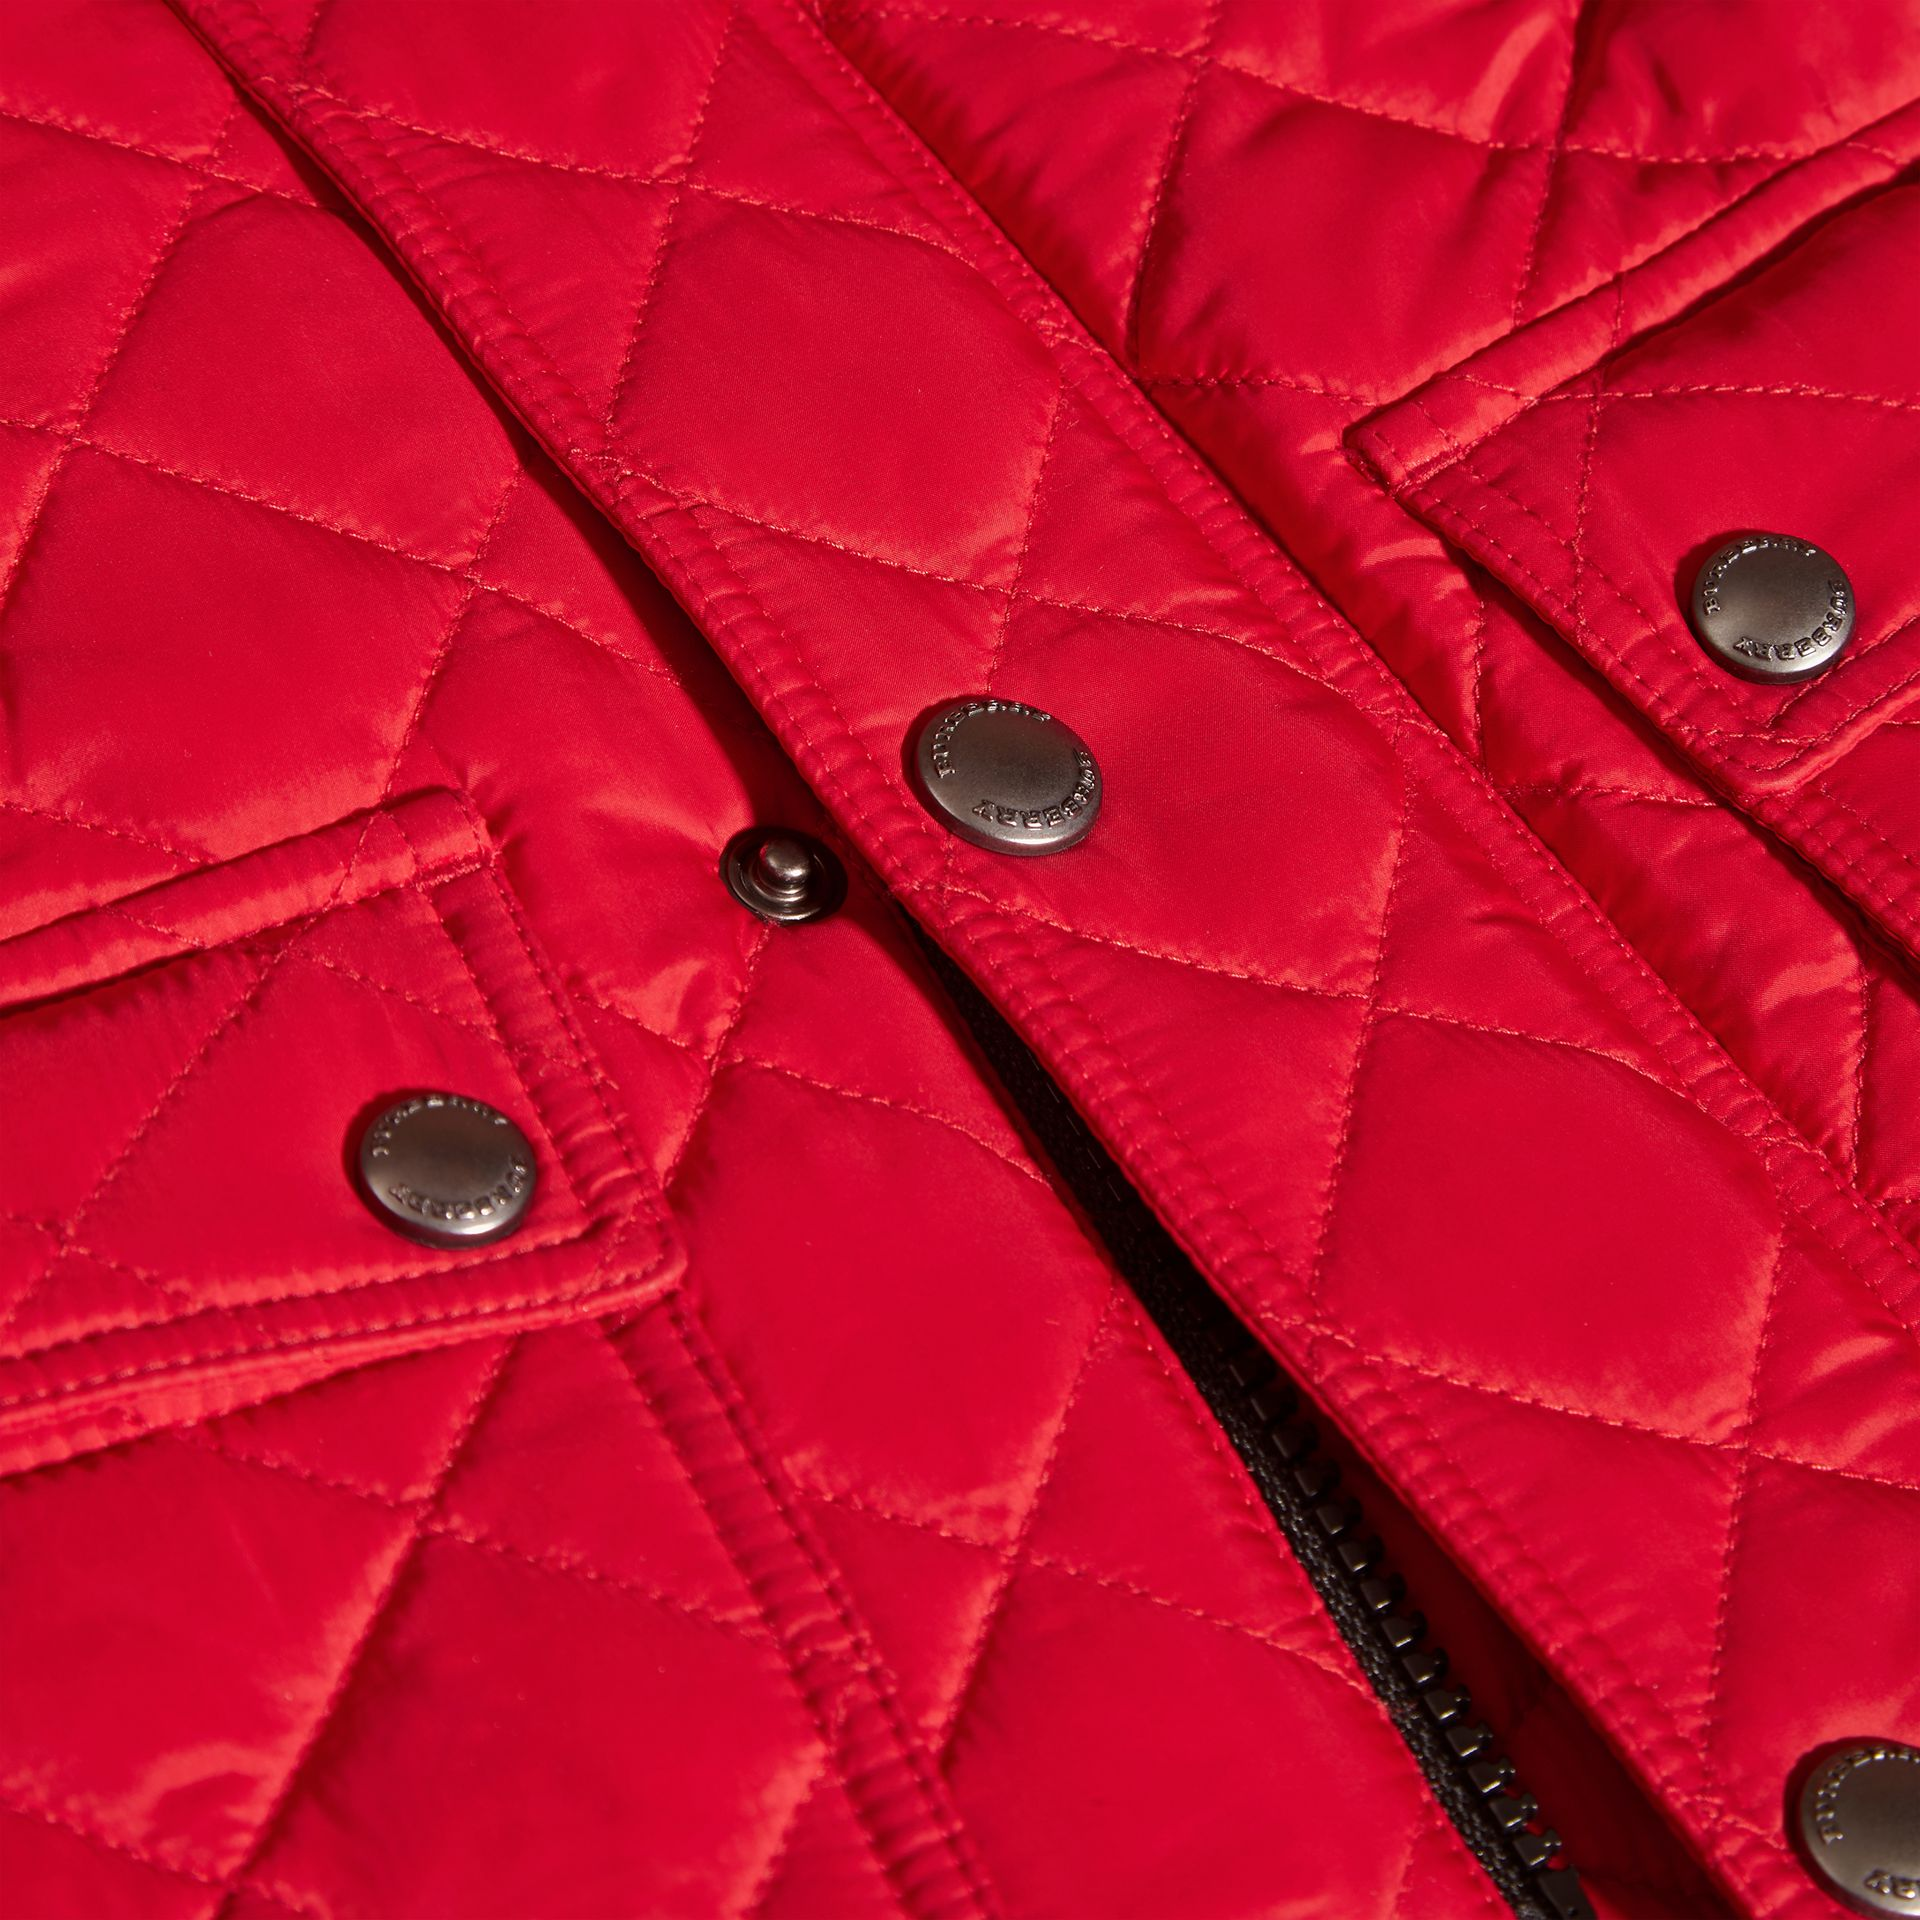 Bright cherry red Lightweight Quilted Jacket with Detachable Hood Bright Cherry Red - gallery image 2